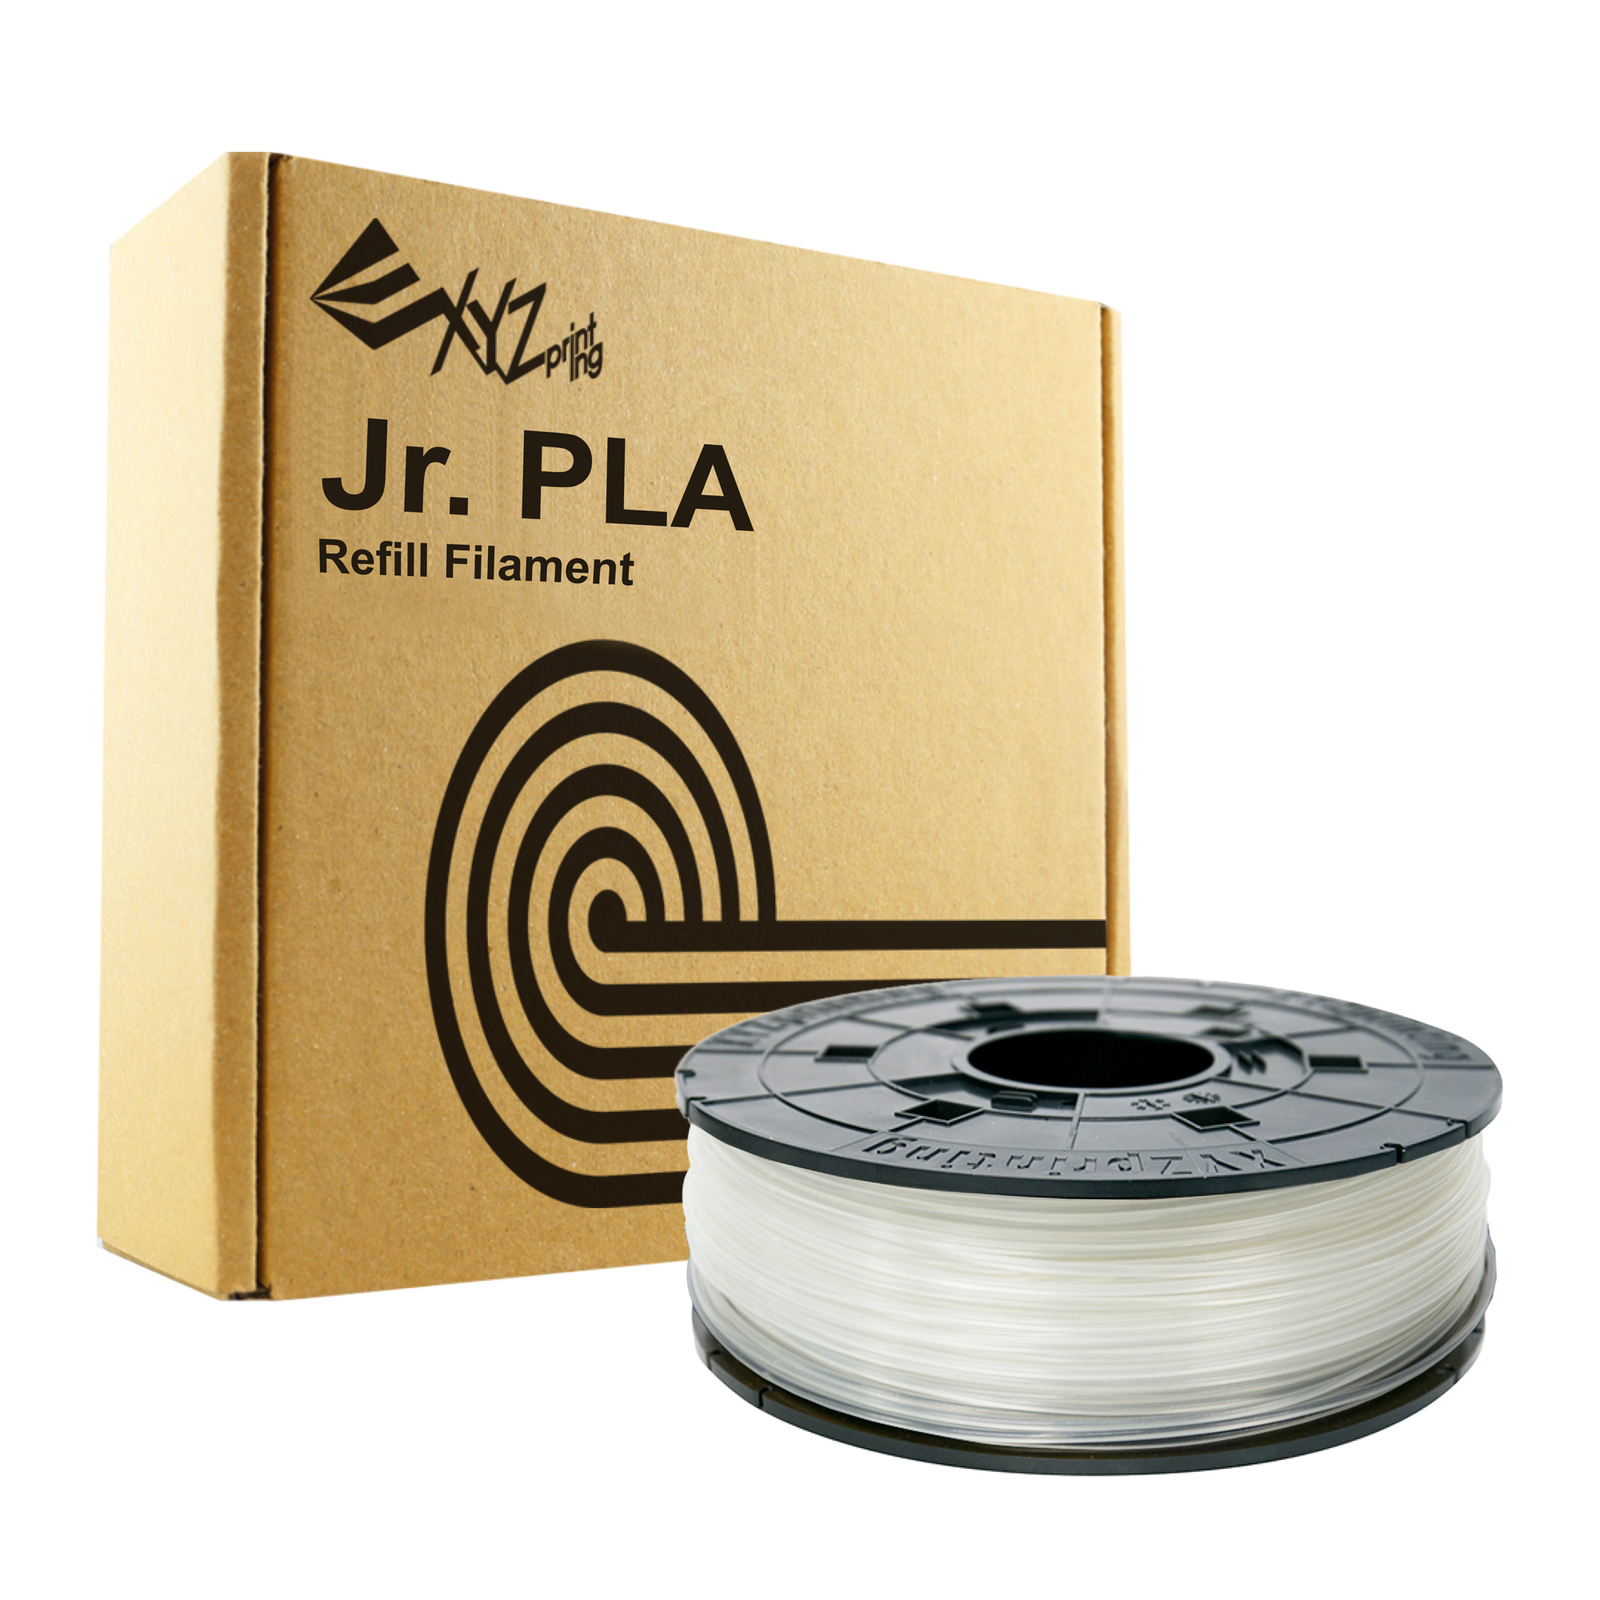 Da Vinci Filament For Mini Maker/Jr - PLA Refill Pack (Nature) image